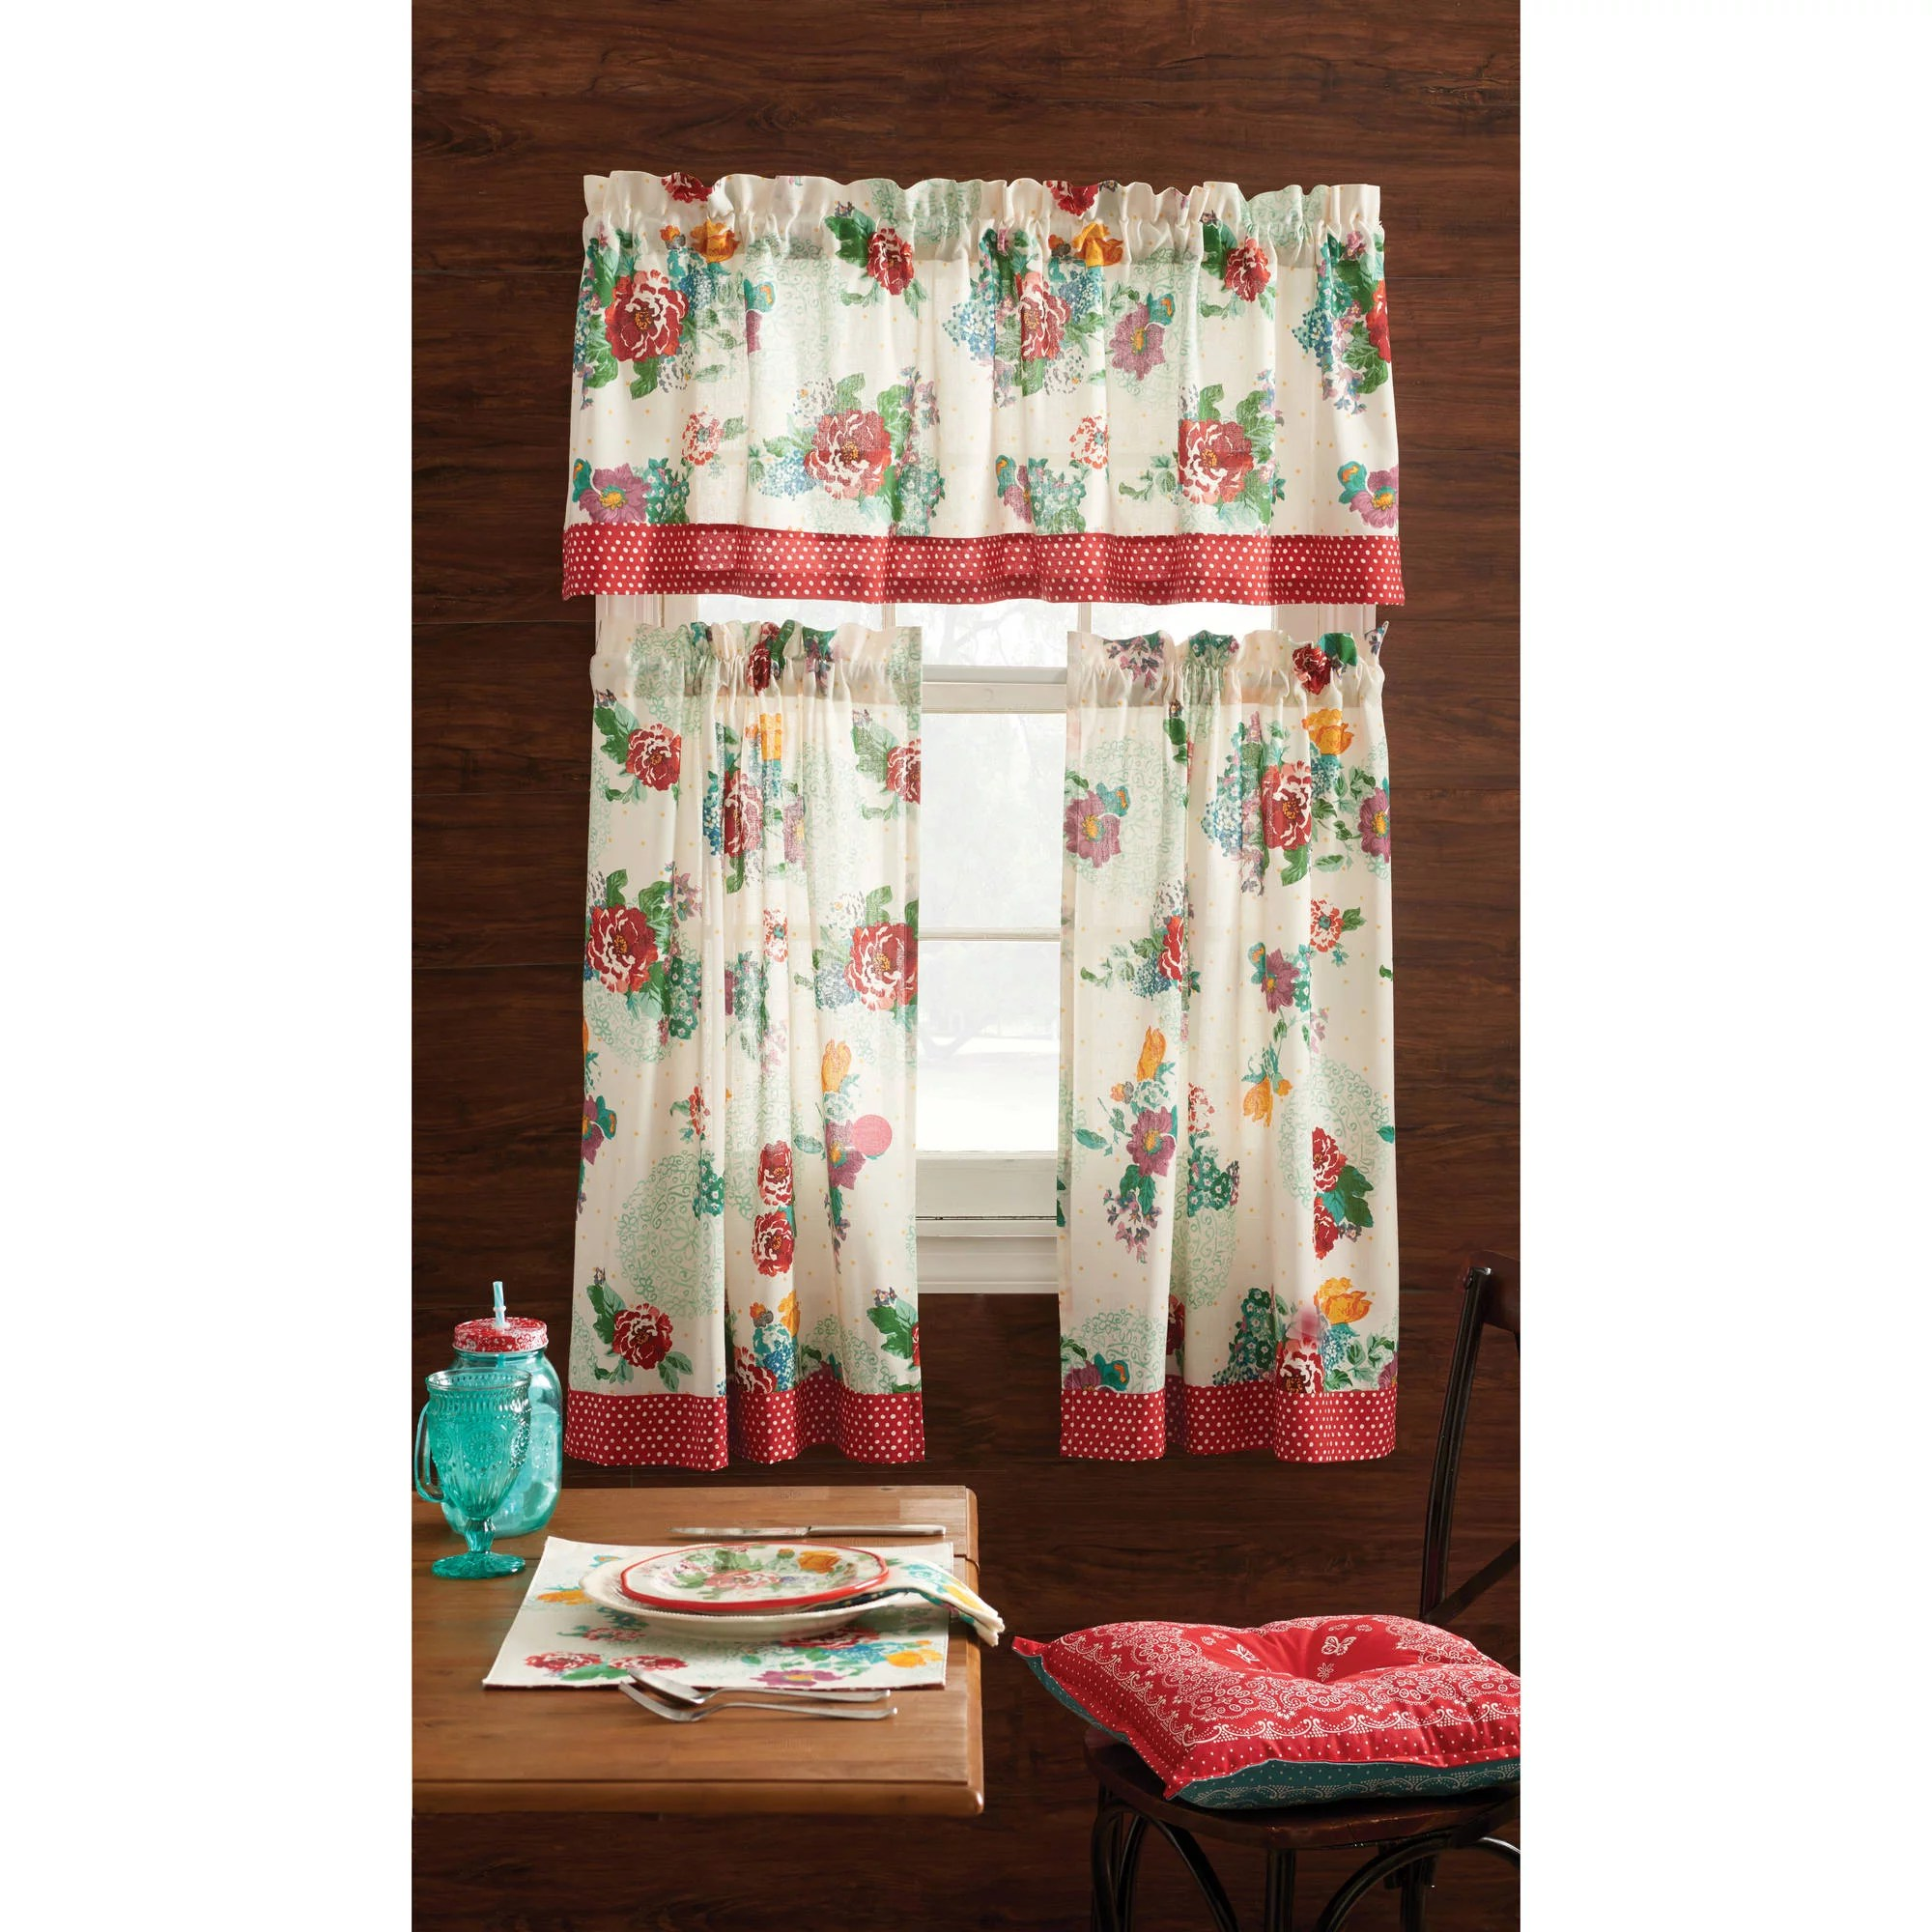 3 Pc Country Apple Decor Cafe Curtain Set Valance Panels Kitchen Red Apple Decor